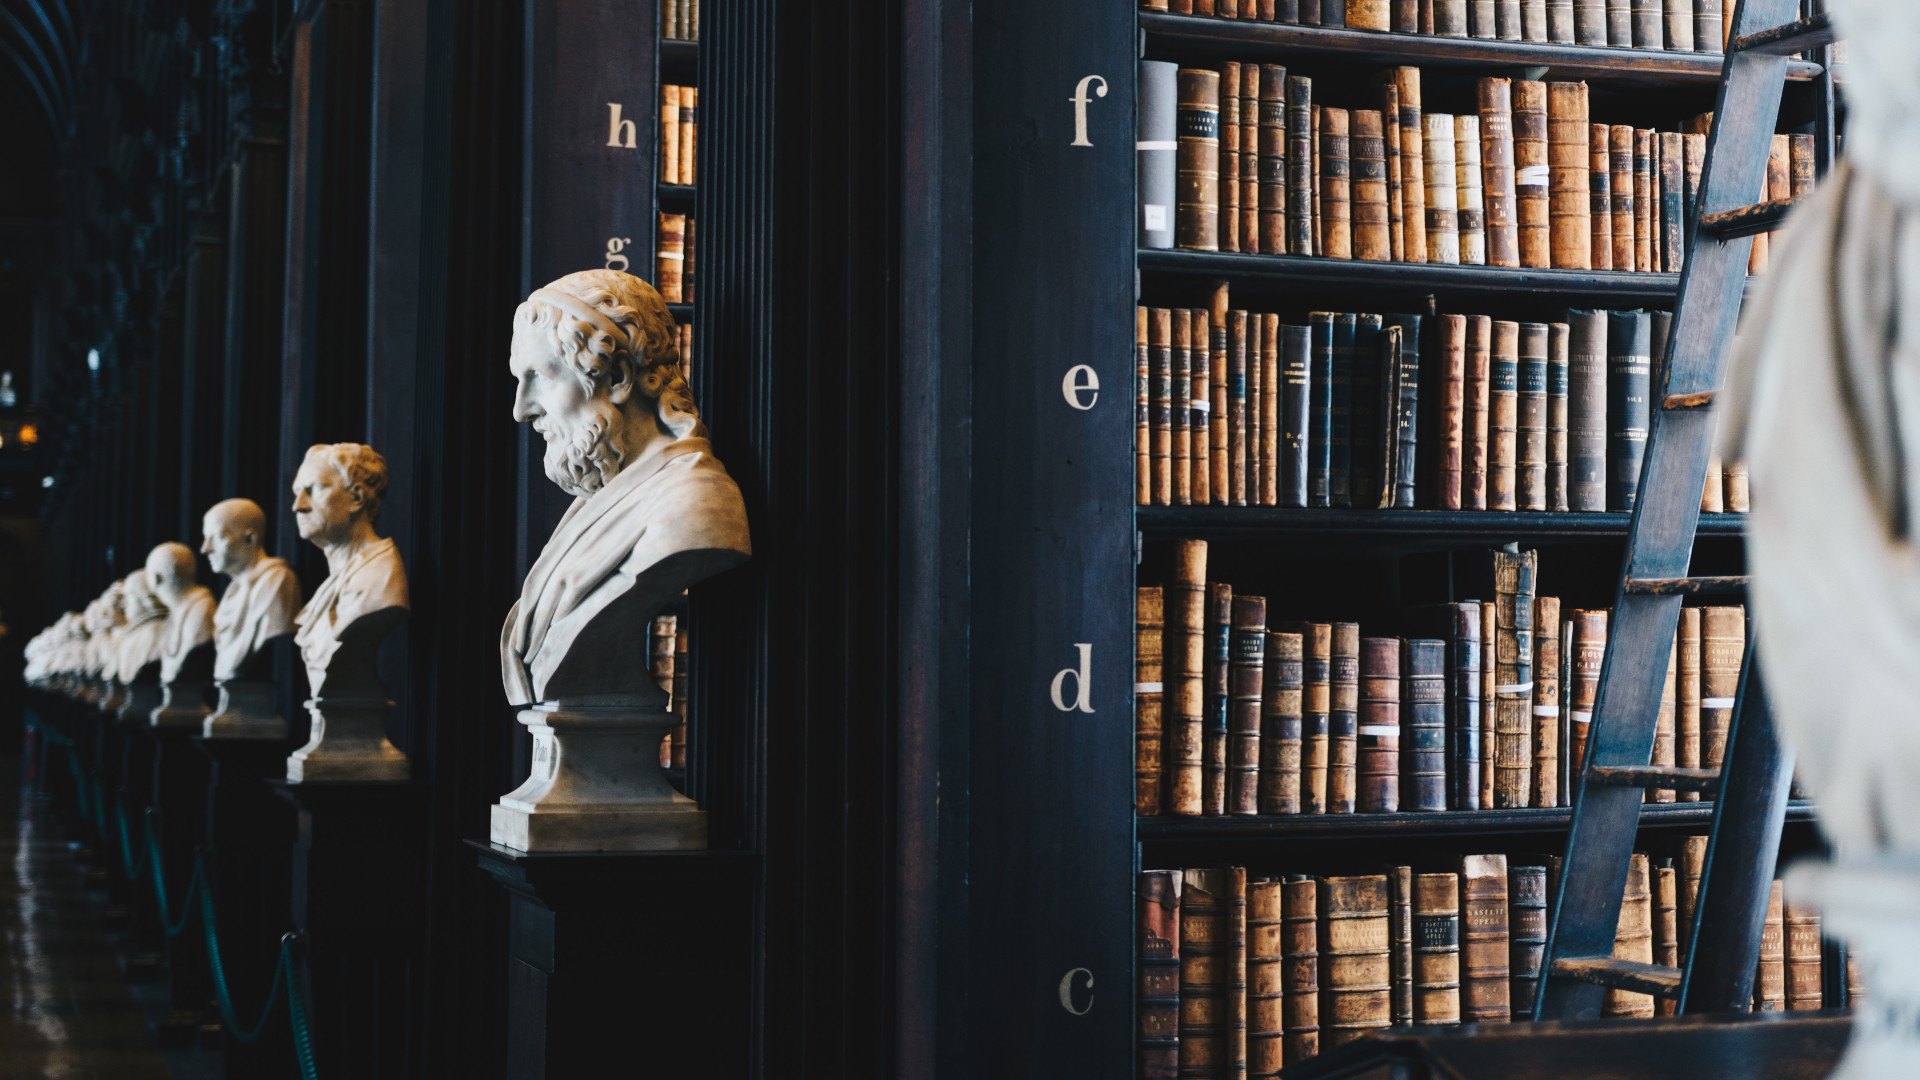 Philosophy Essentials for Christian Thinkers